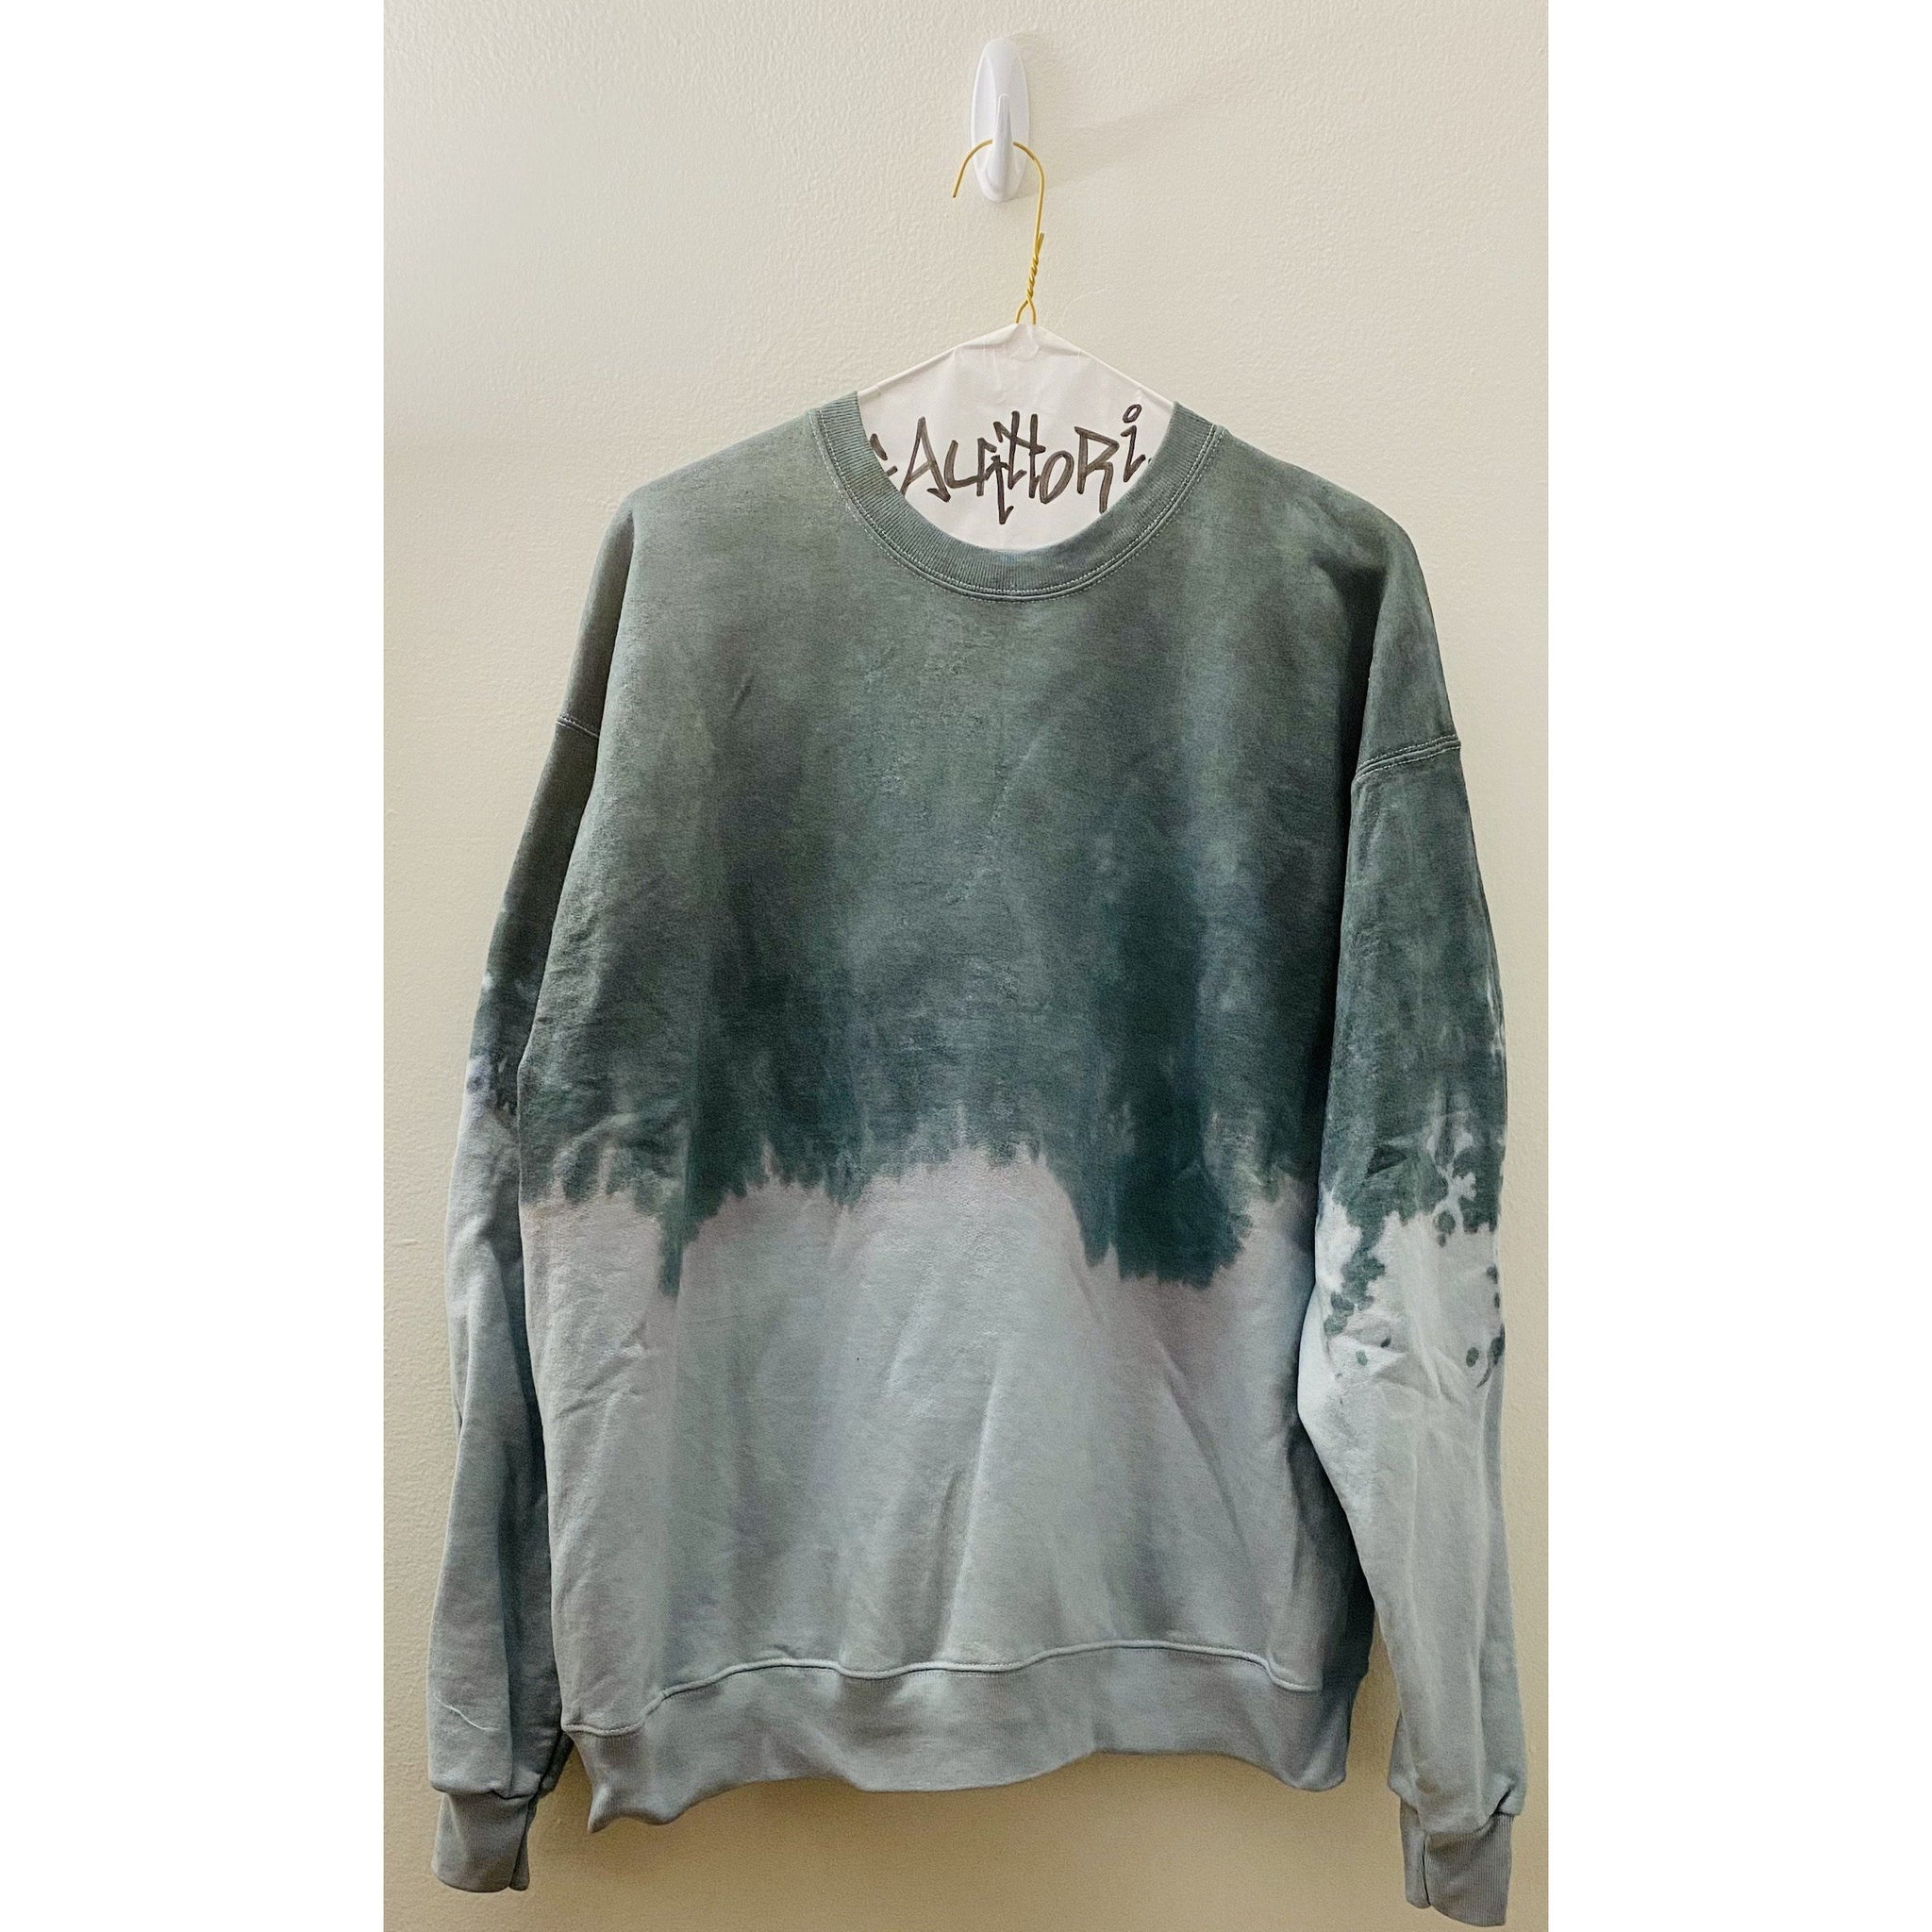 KIDS: Green Acid Wash Sweatshirt